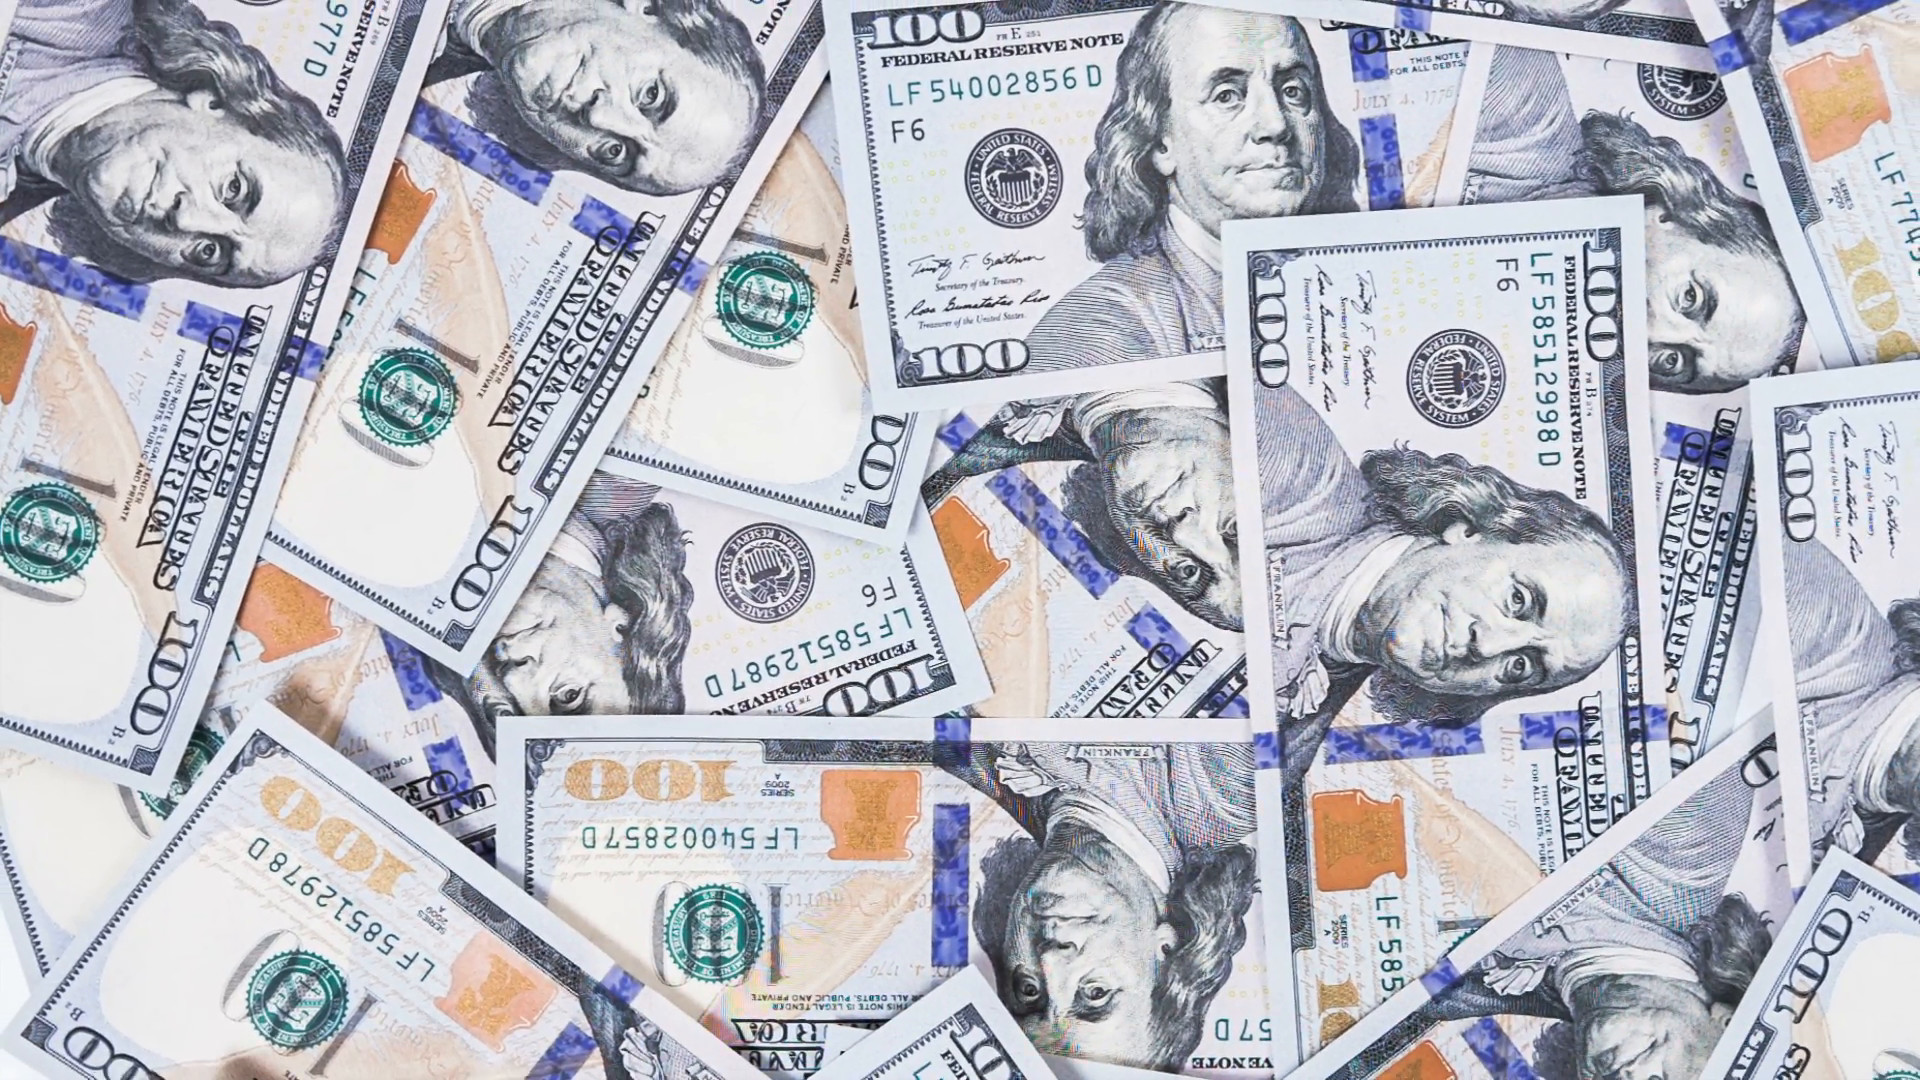 1920x1080 Background with money american hundred dollar bills rotate. RAW video  record. Stock Video Footage - VideoBlocks